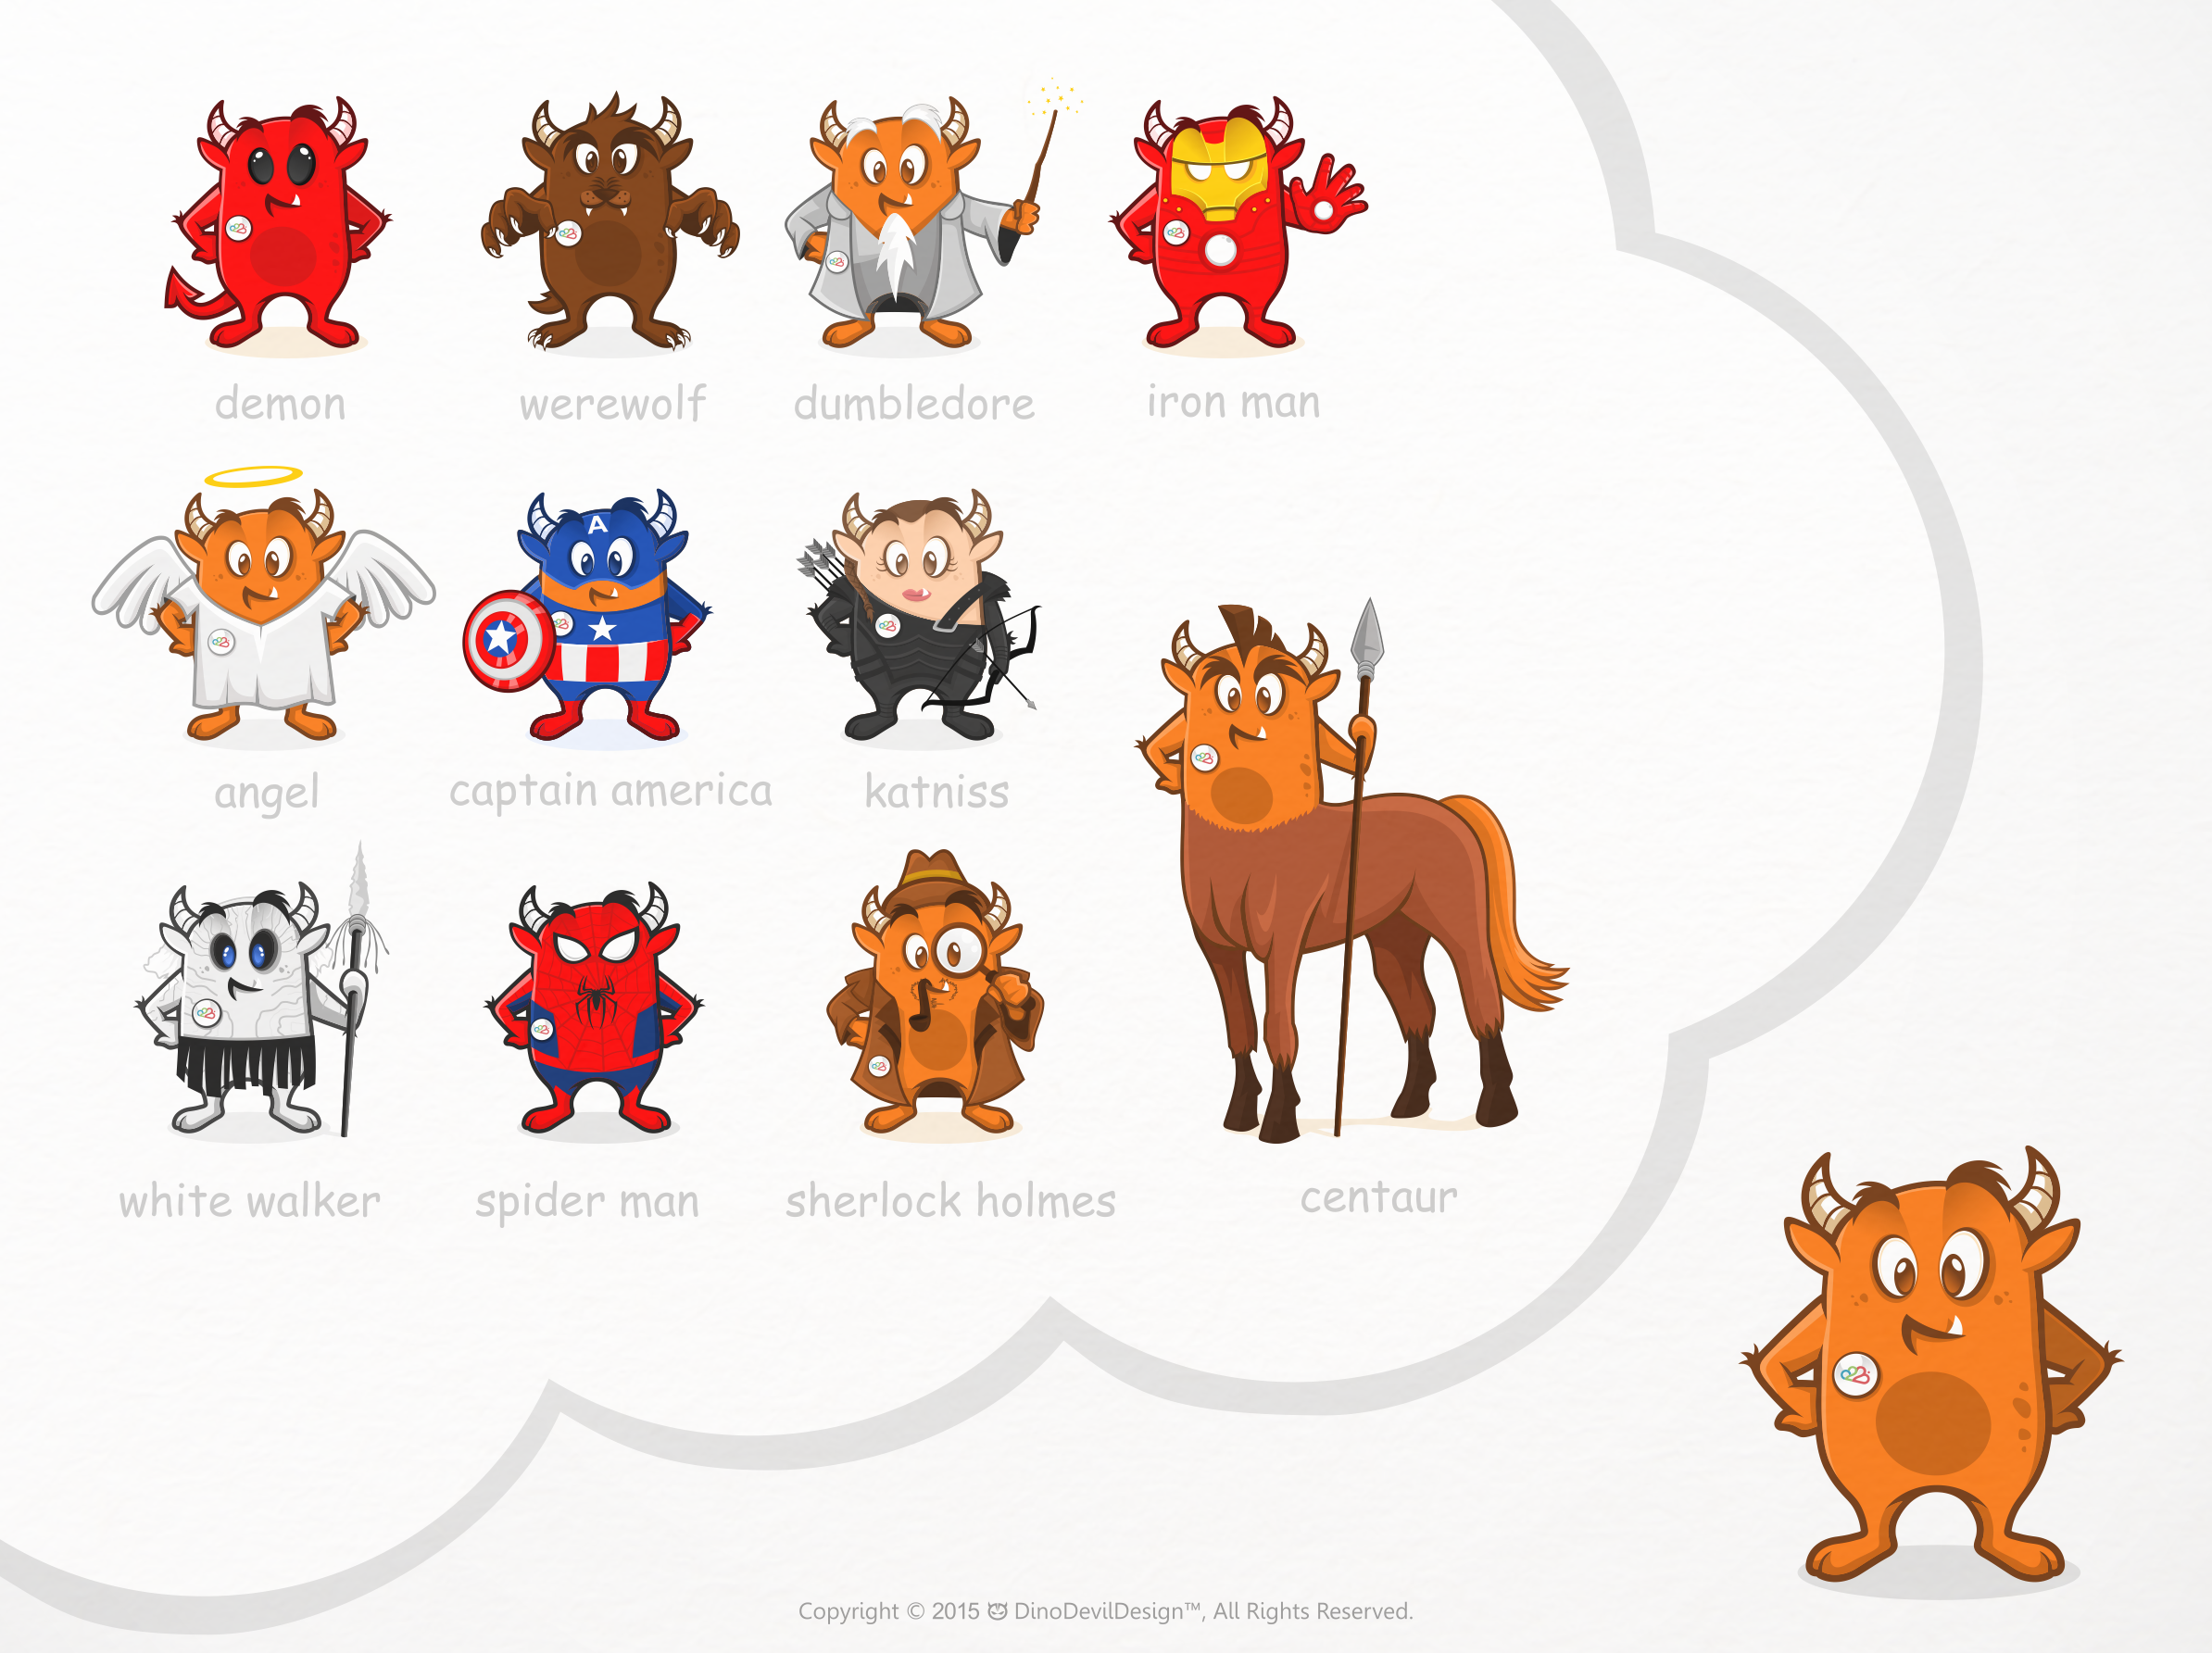 10 New Mascot Designs for Role.Place